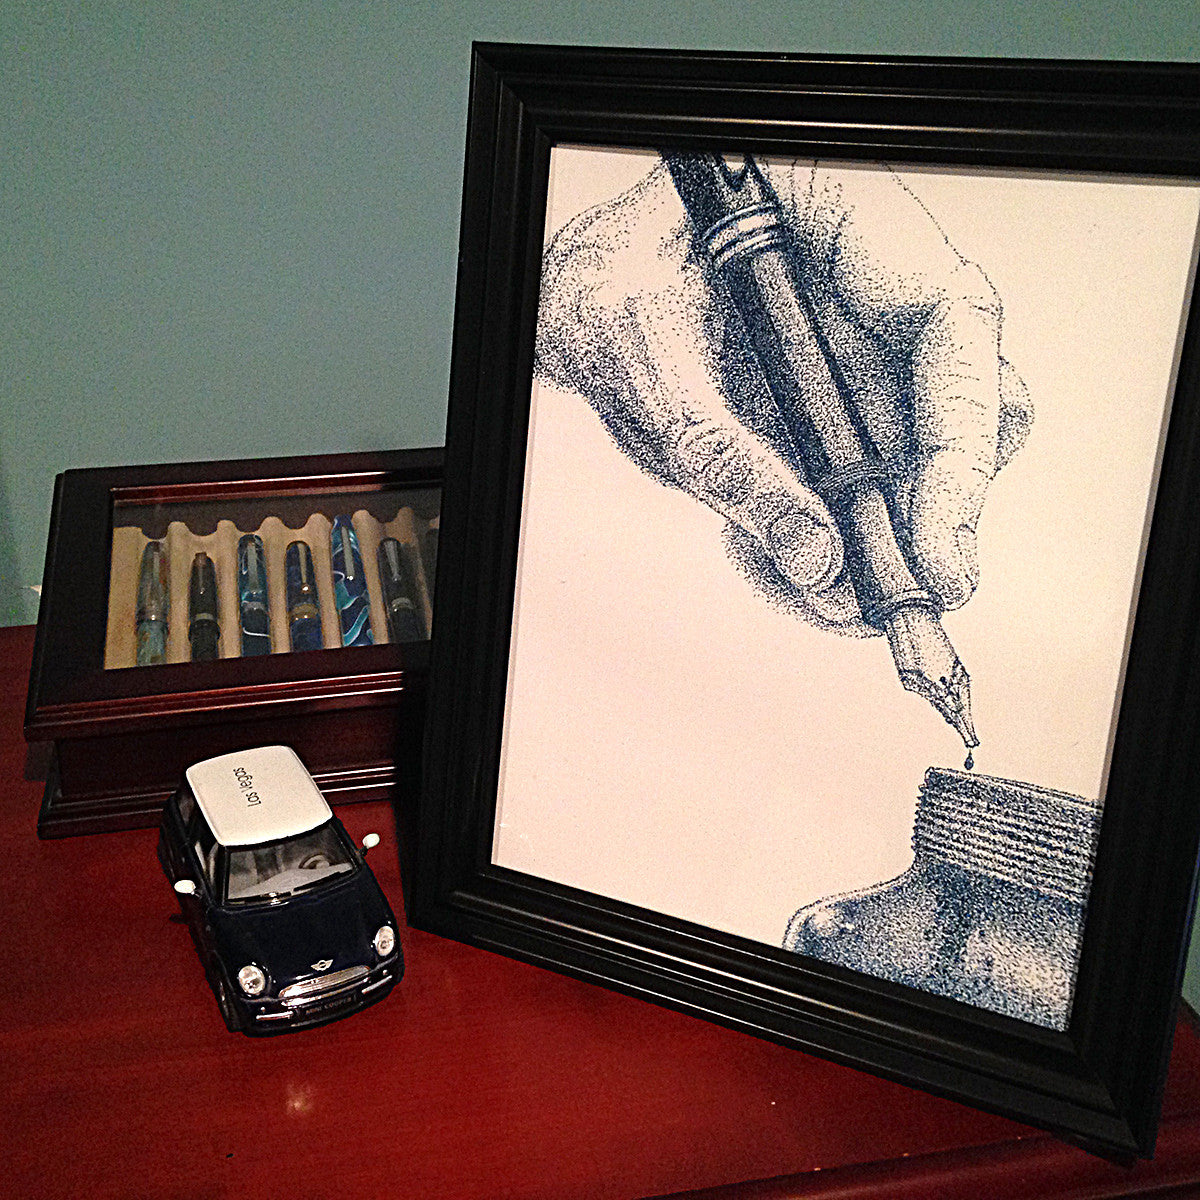 Blue Dots Fountain Pen Print Framed and on a Desk